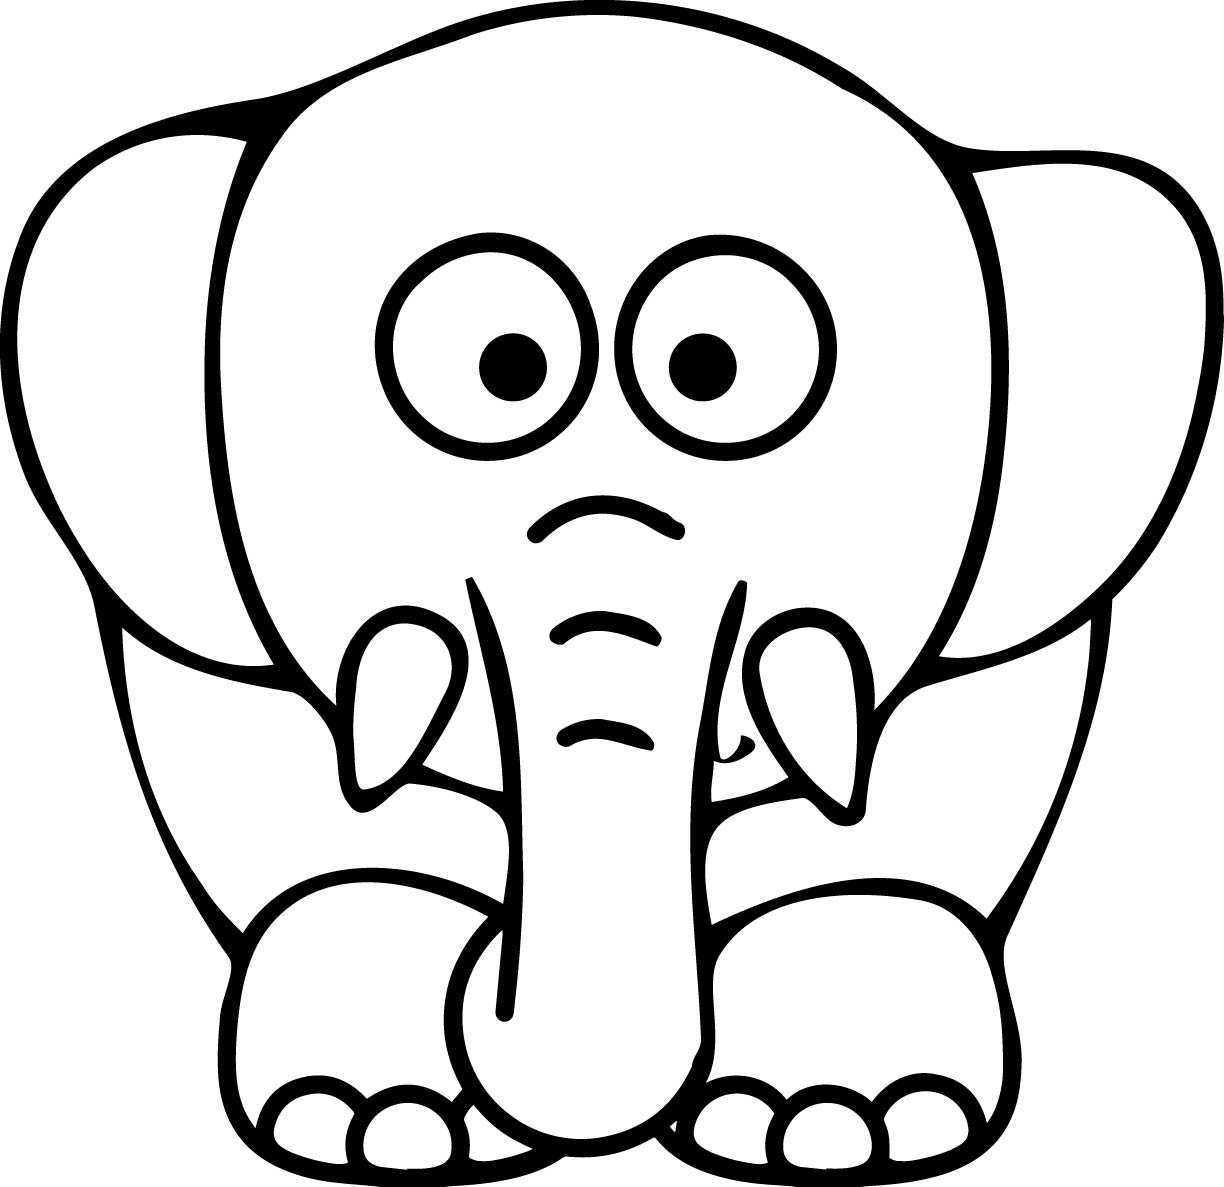 Elephant Coloring Pages | Free download best Elephant Coloring Pages ...